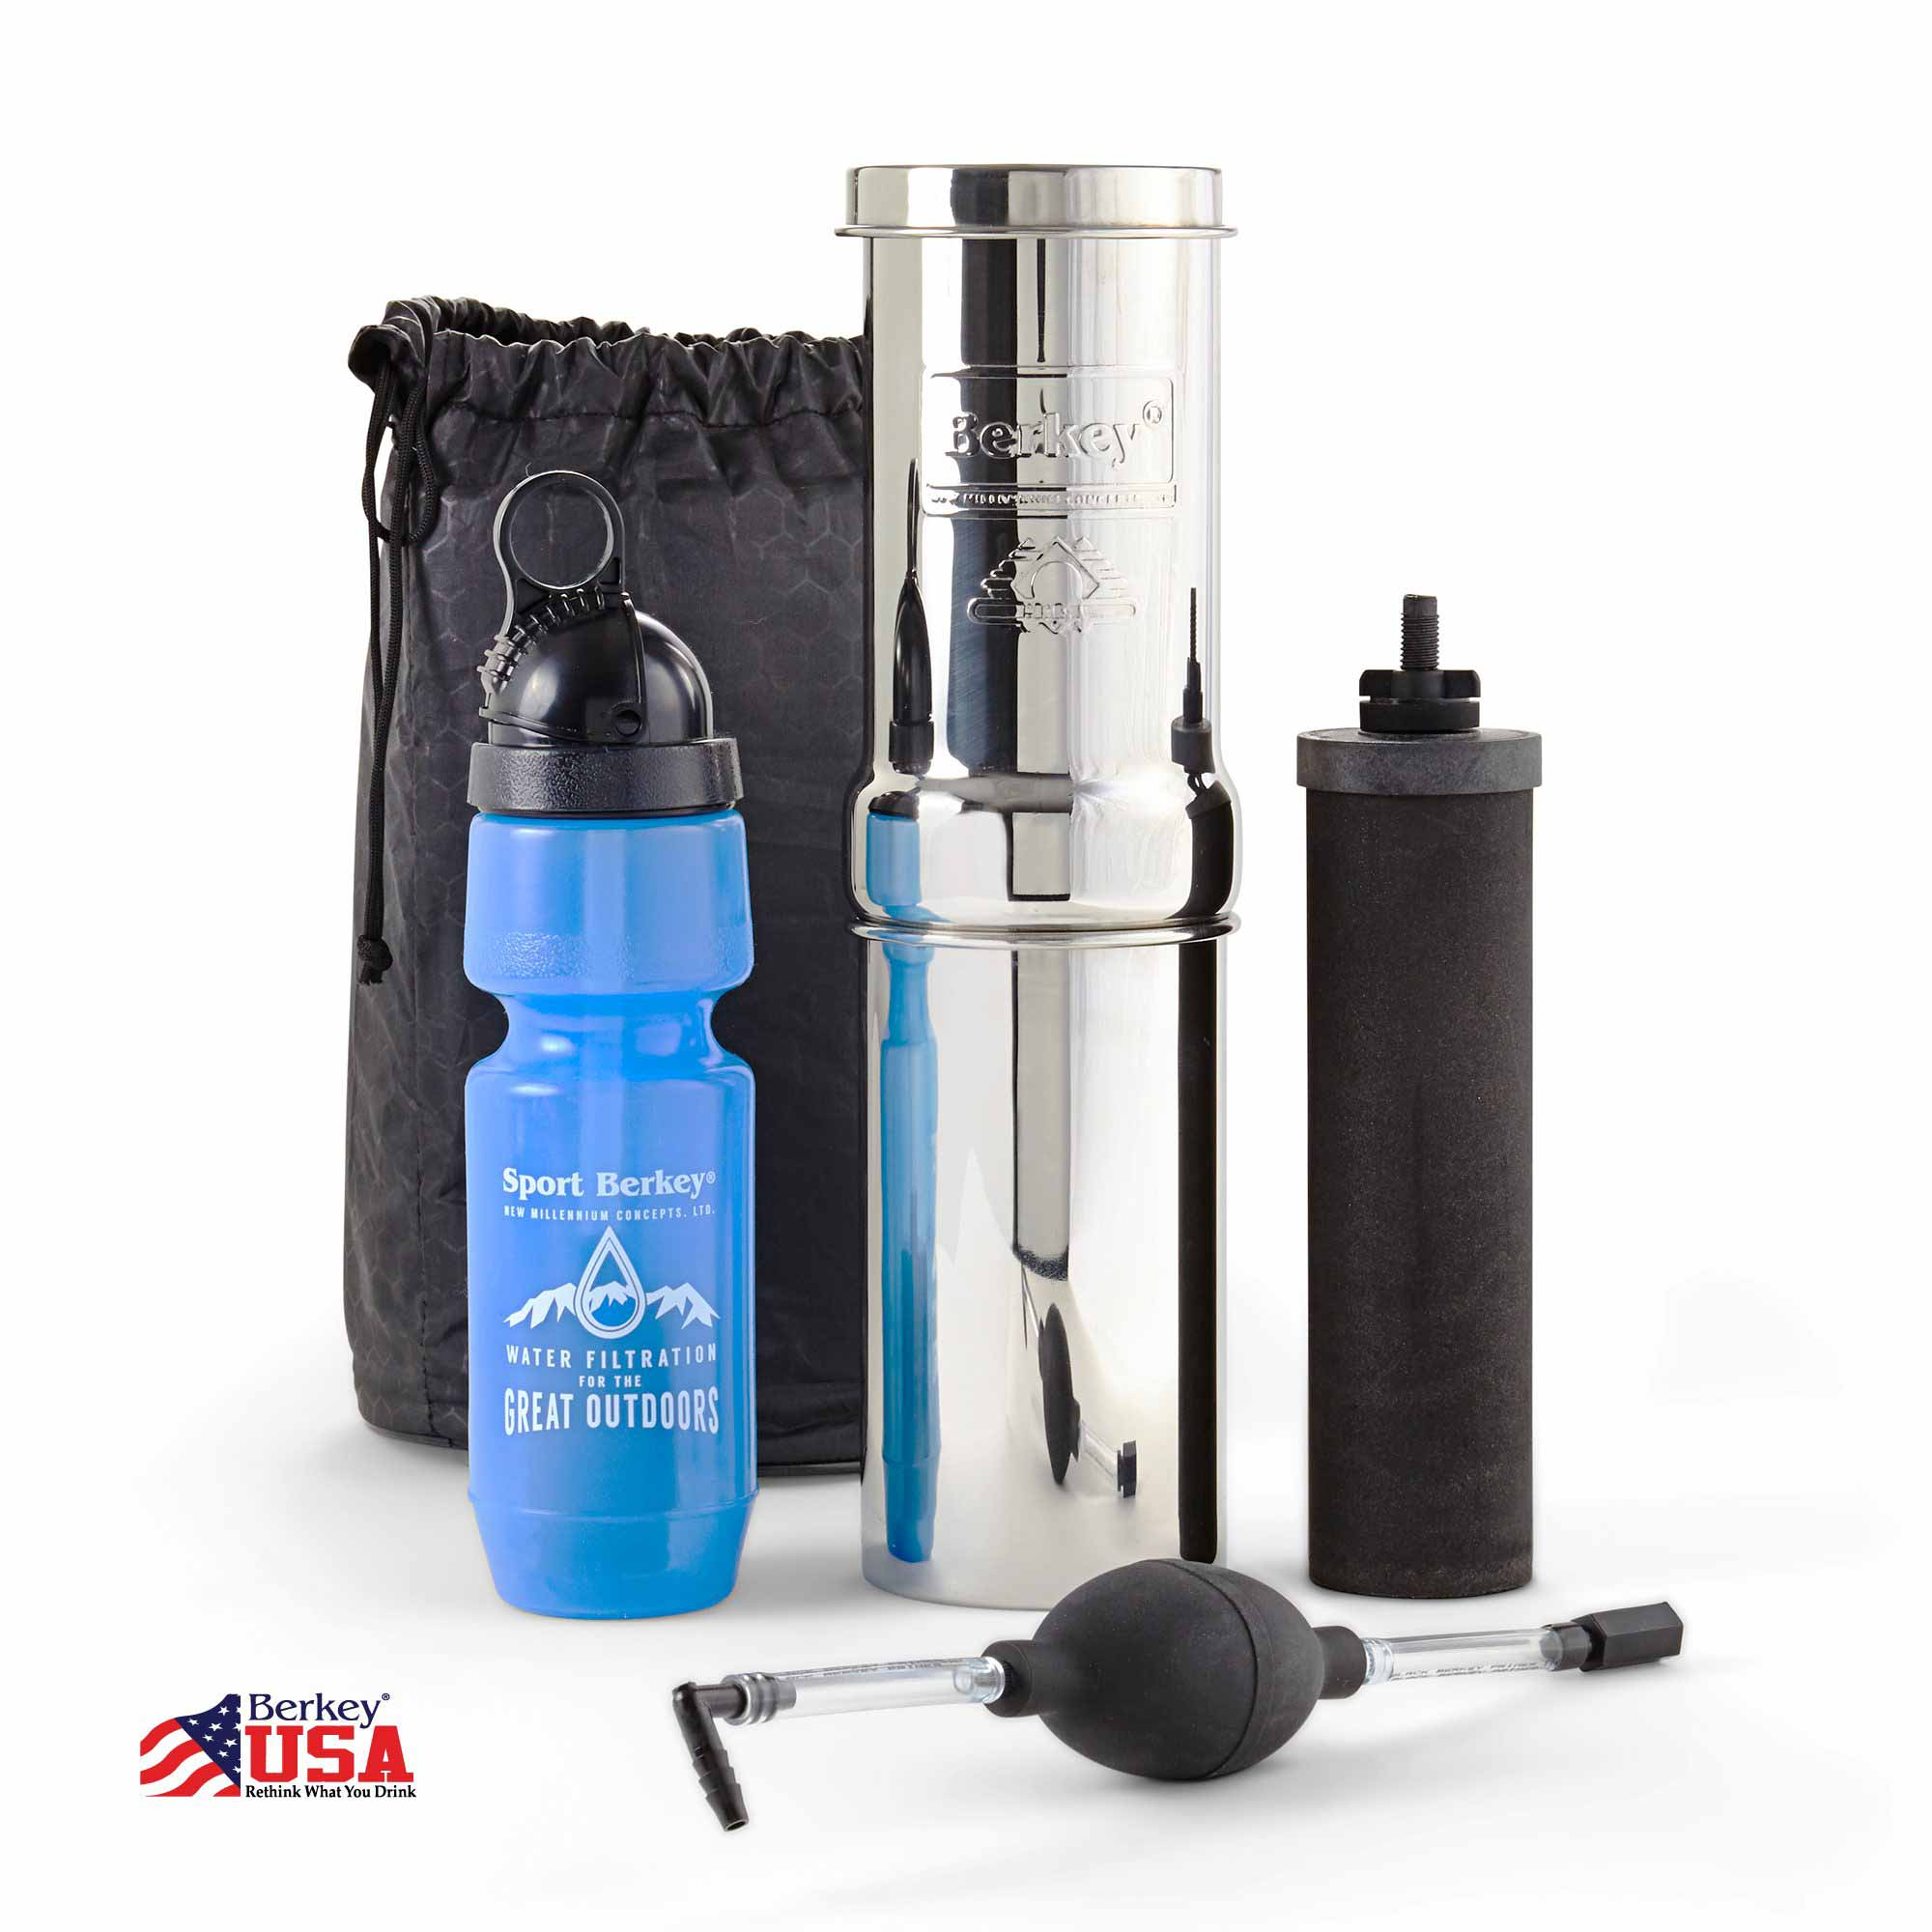 Go Berkey Kit By Berkey USA